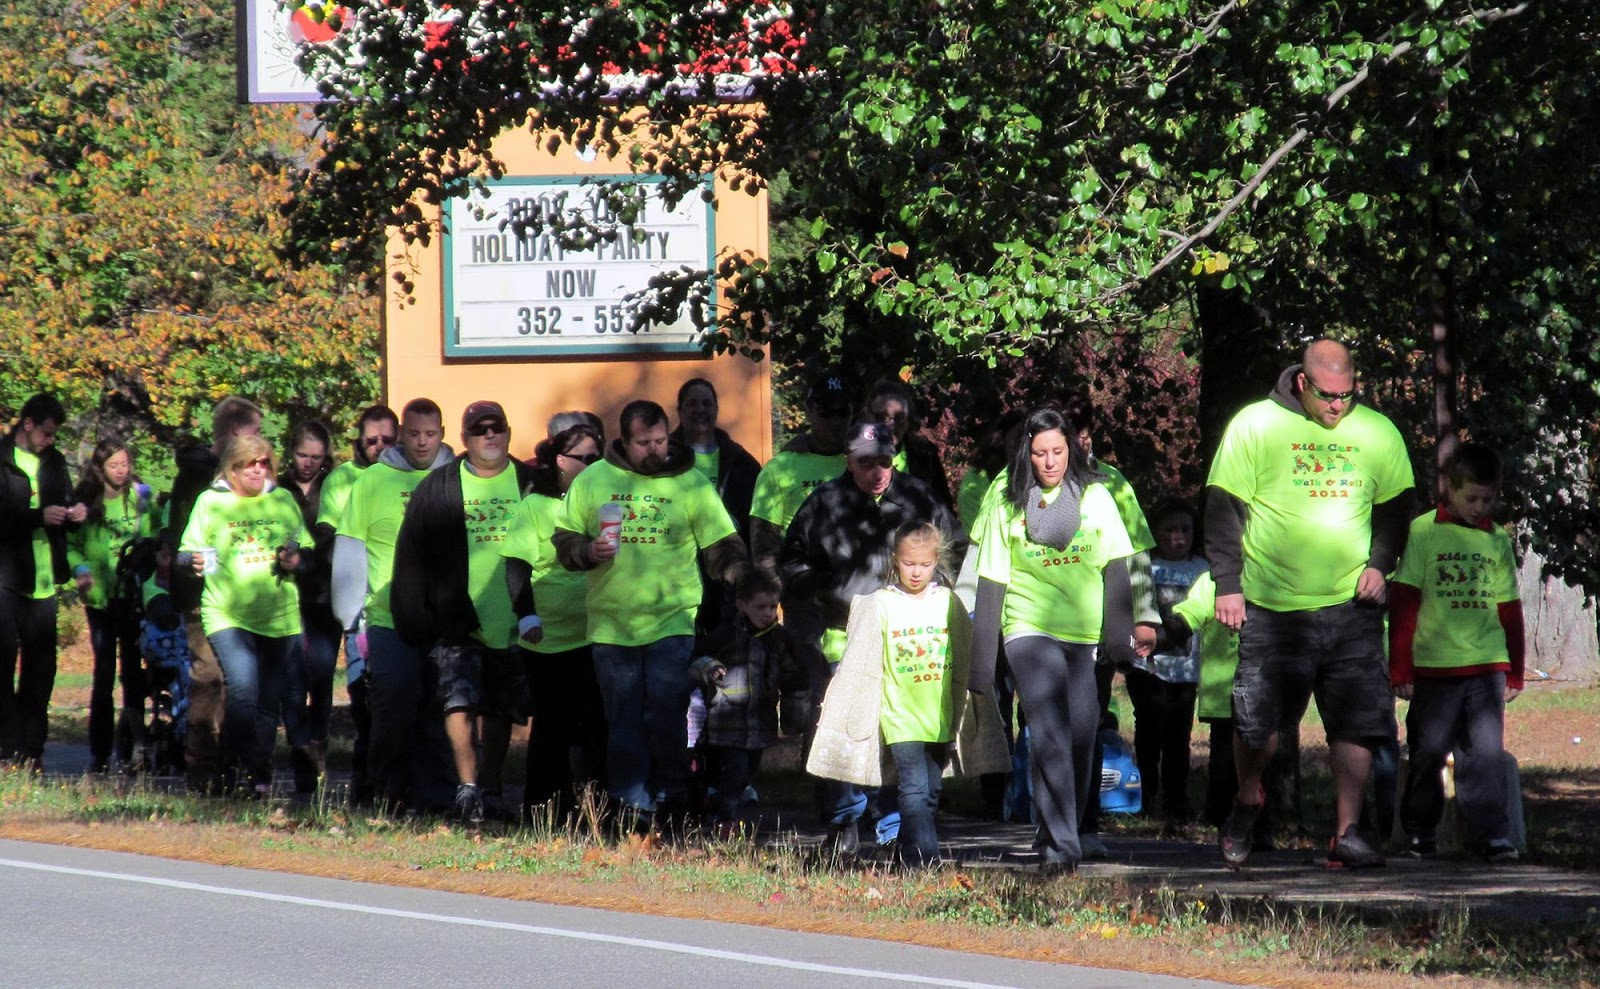 Nearly 200 family members, physicians, nurses, friends and community members participated in Cedarcrest Center's First Annual KIDS CARE Walk & Roll in Keene, New Hampshire recently.  Through a grassroots, on-line fundraising effort, the event generated $15,000 to benefit children with complex medical and developmental needs at the Center.